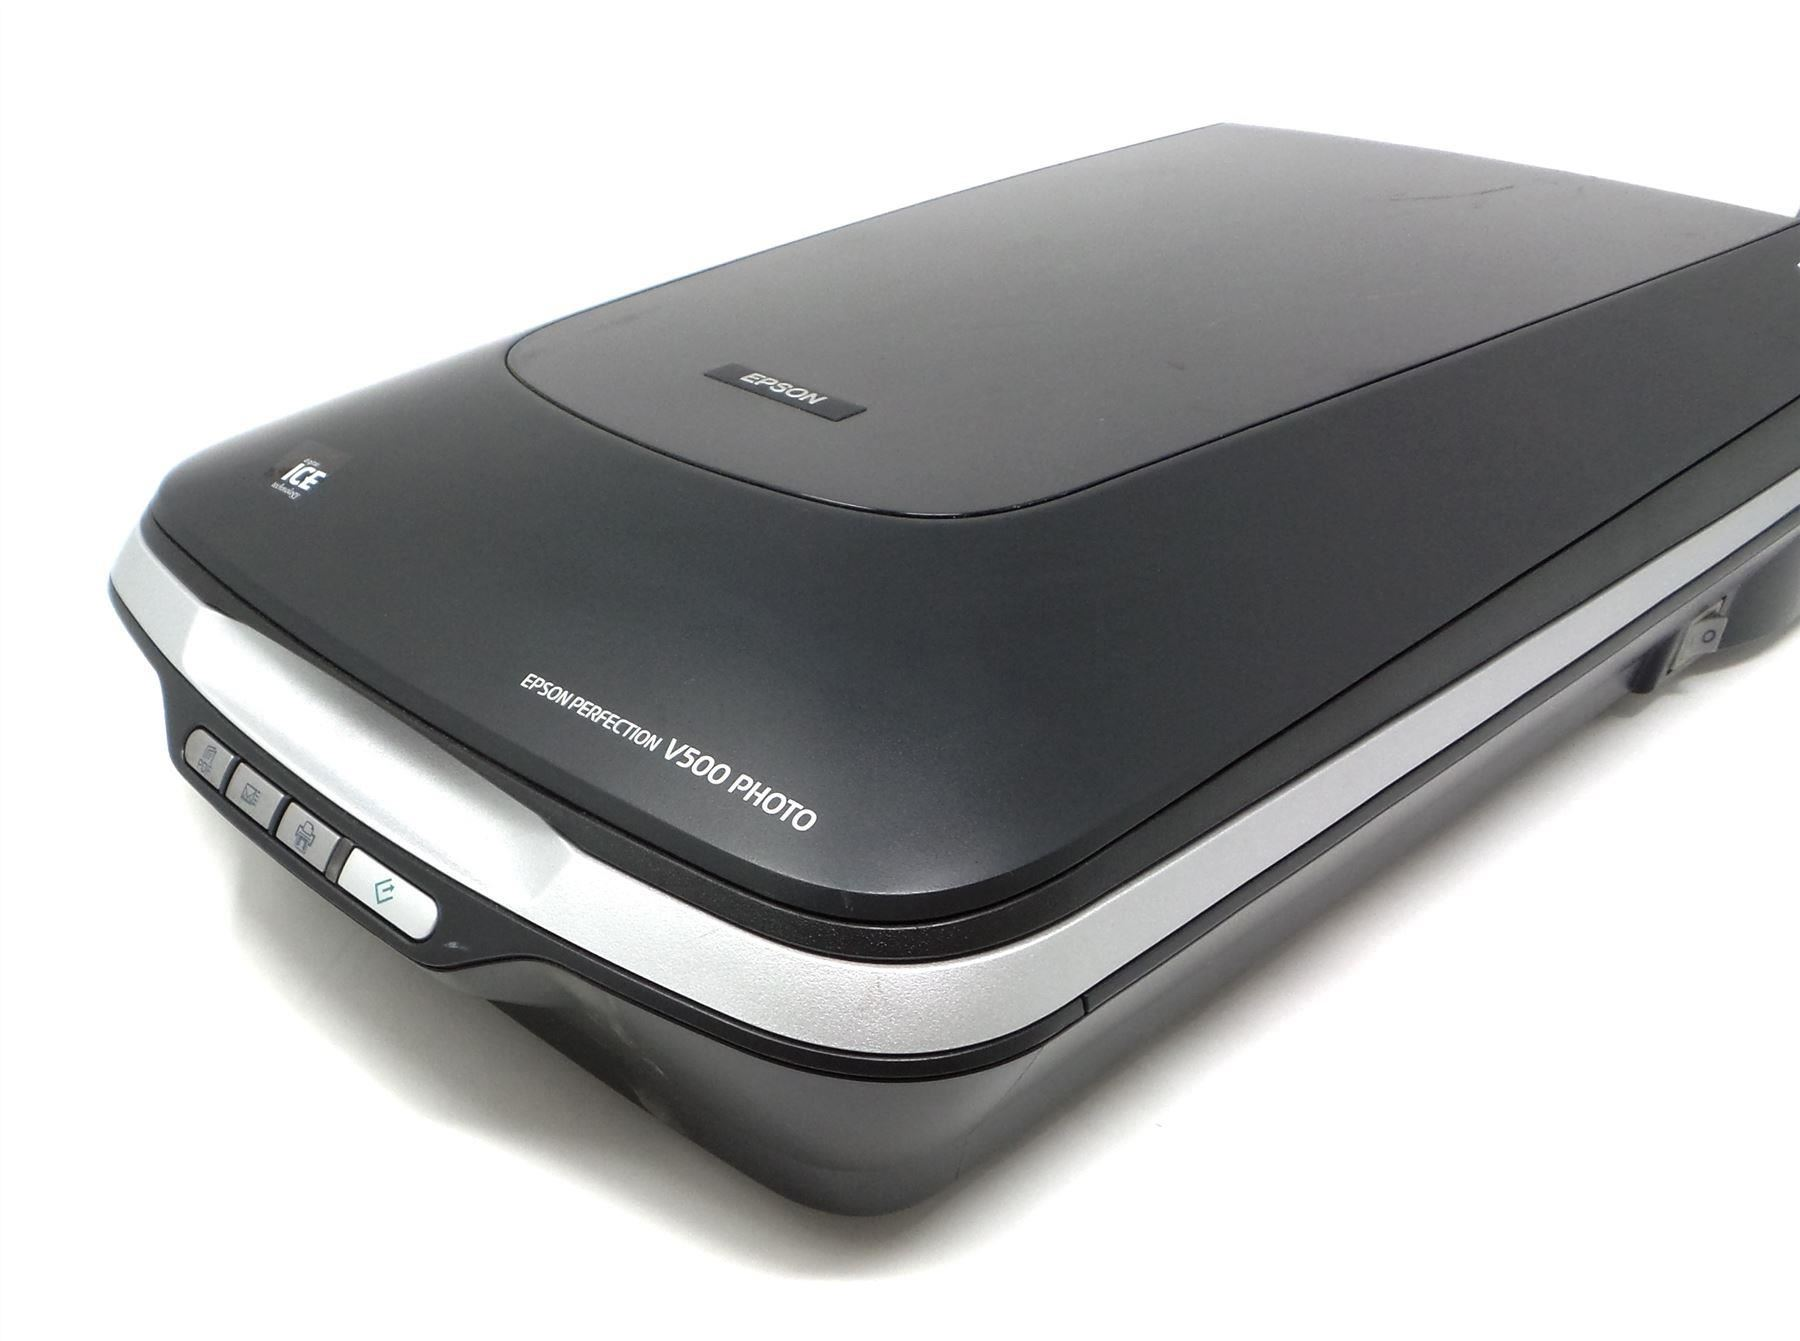 NEW DRIVERS: EPSON PERFECTION V500 PHOTO SCANNER